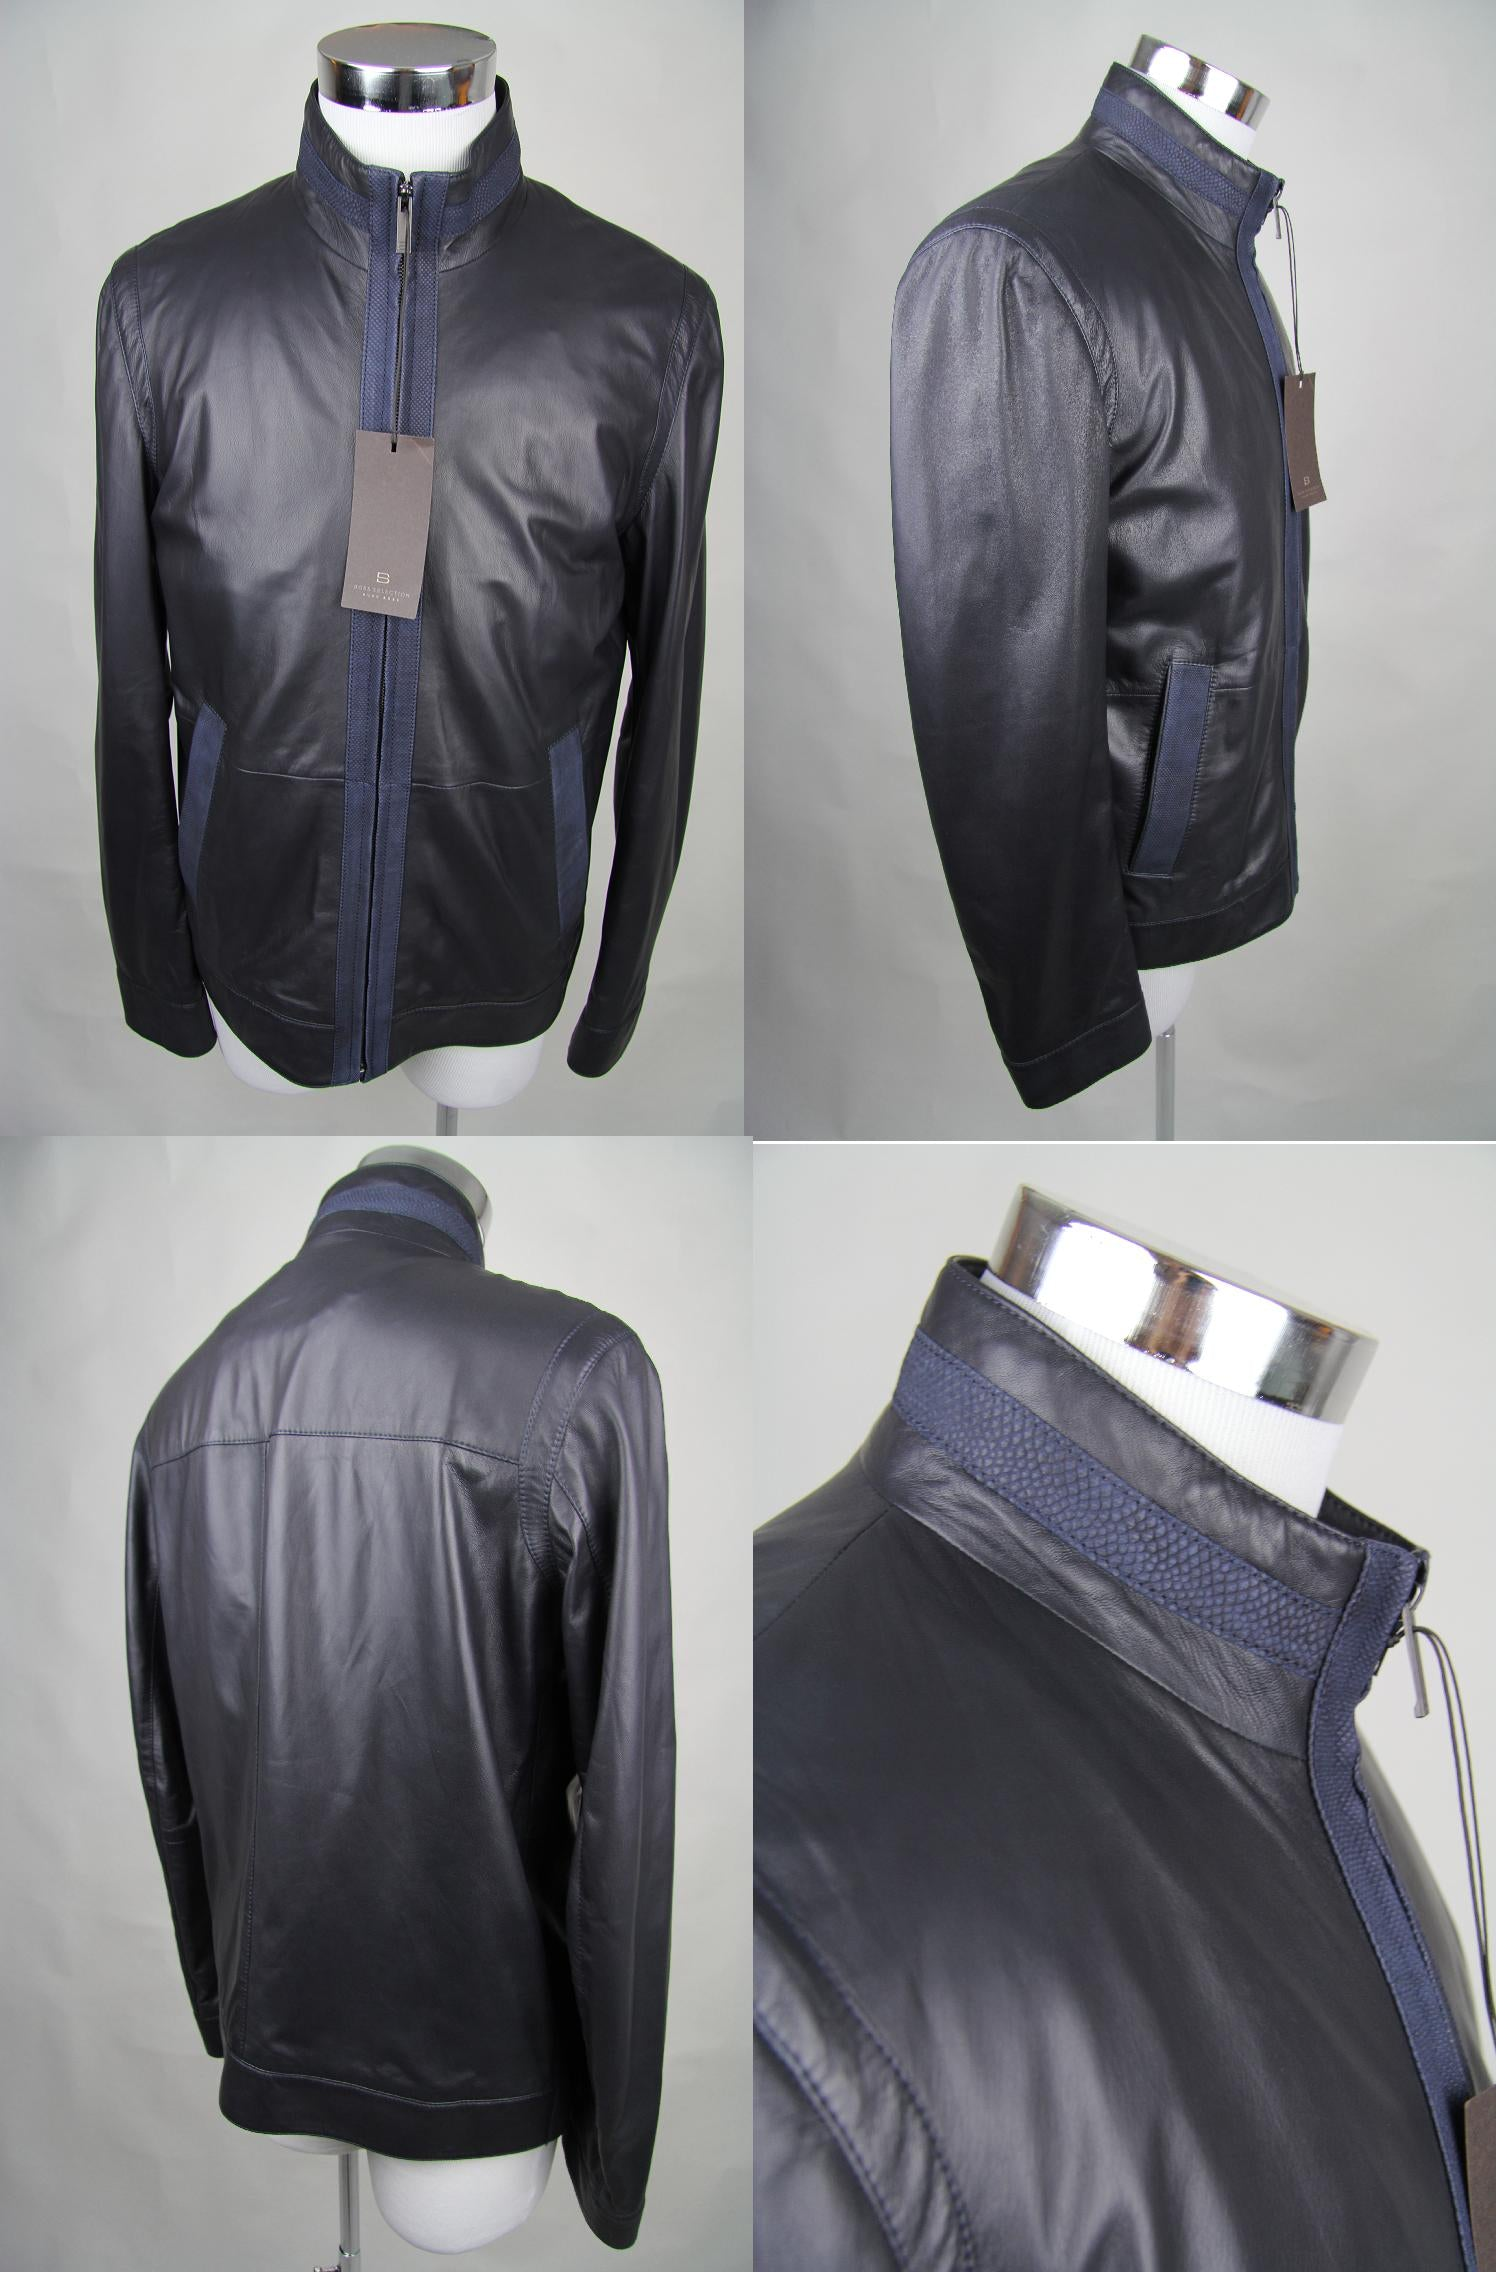 hugo boss selection winter leder jacke ravin gr 50 neu leather jacket. Black Bedroom Furniture Sets. Home Design Ideas